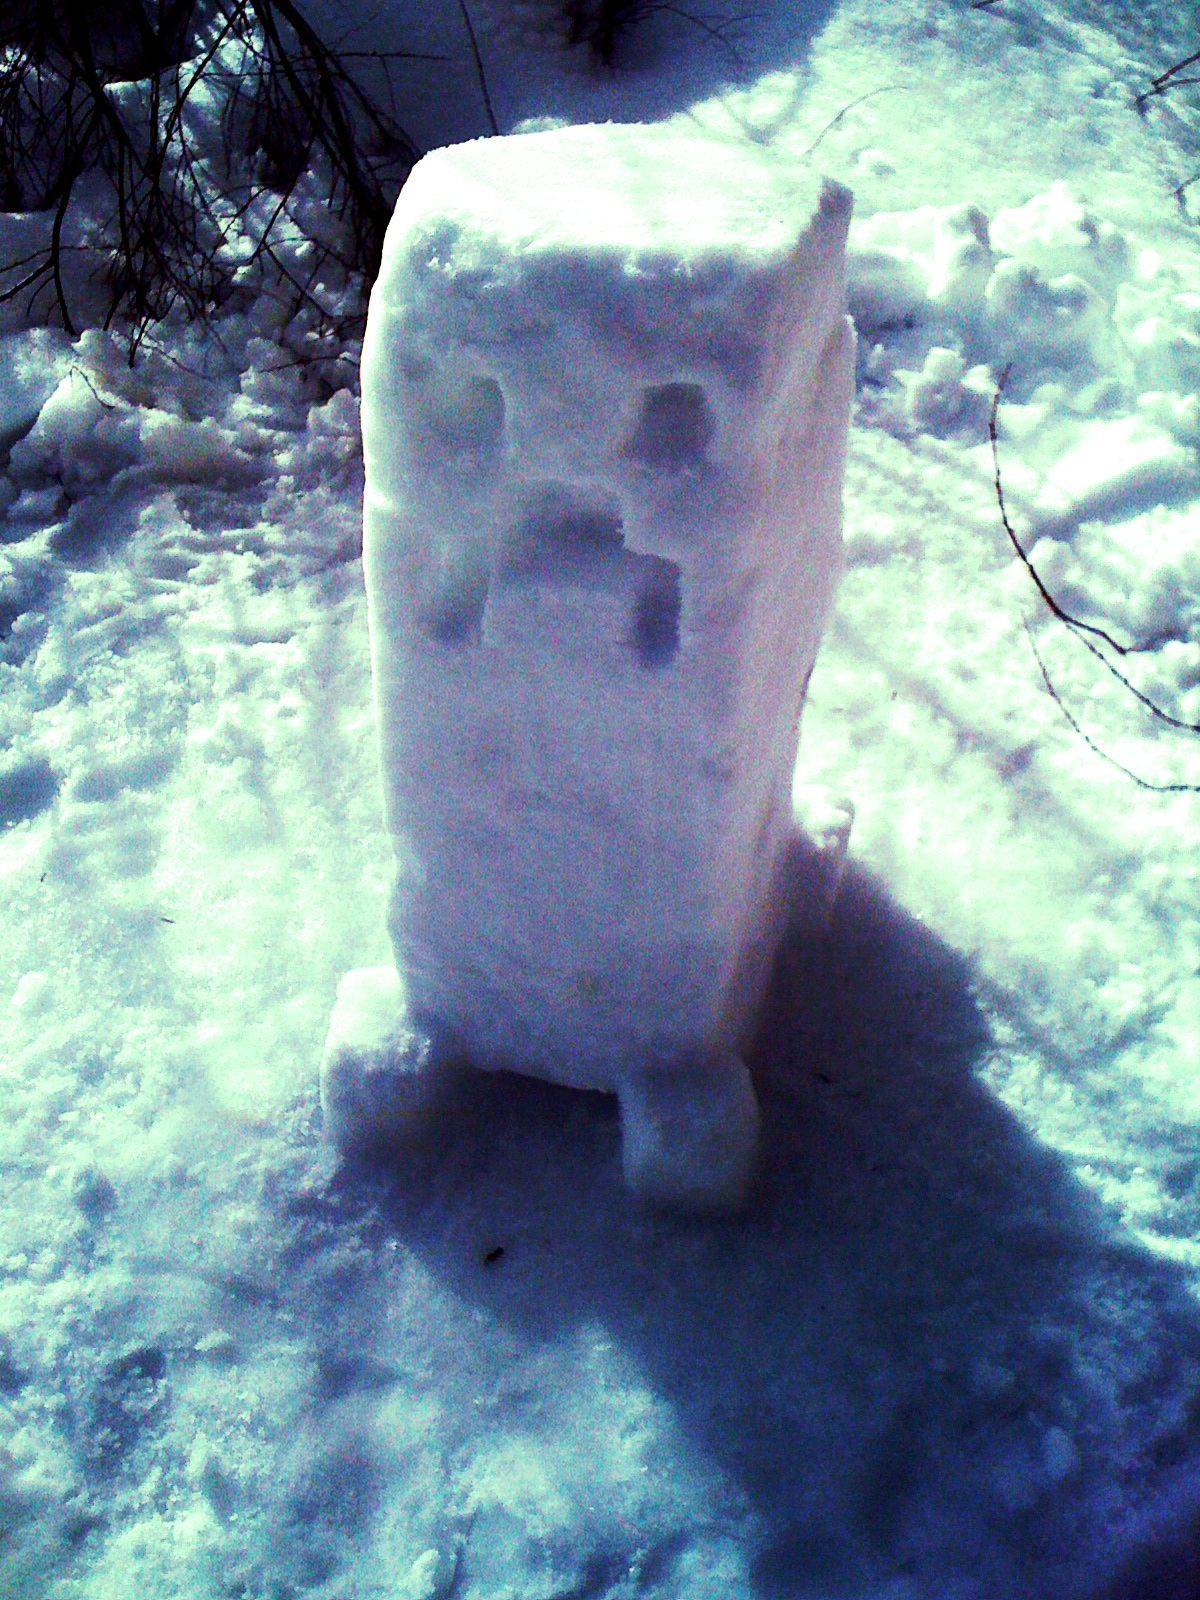 creeper-joe:  Creeper the Snowman was a jolly, happy… BOOM! (x-post from /r/pics)  wonderful minecraft  CREEPER!